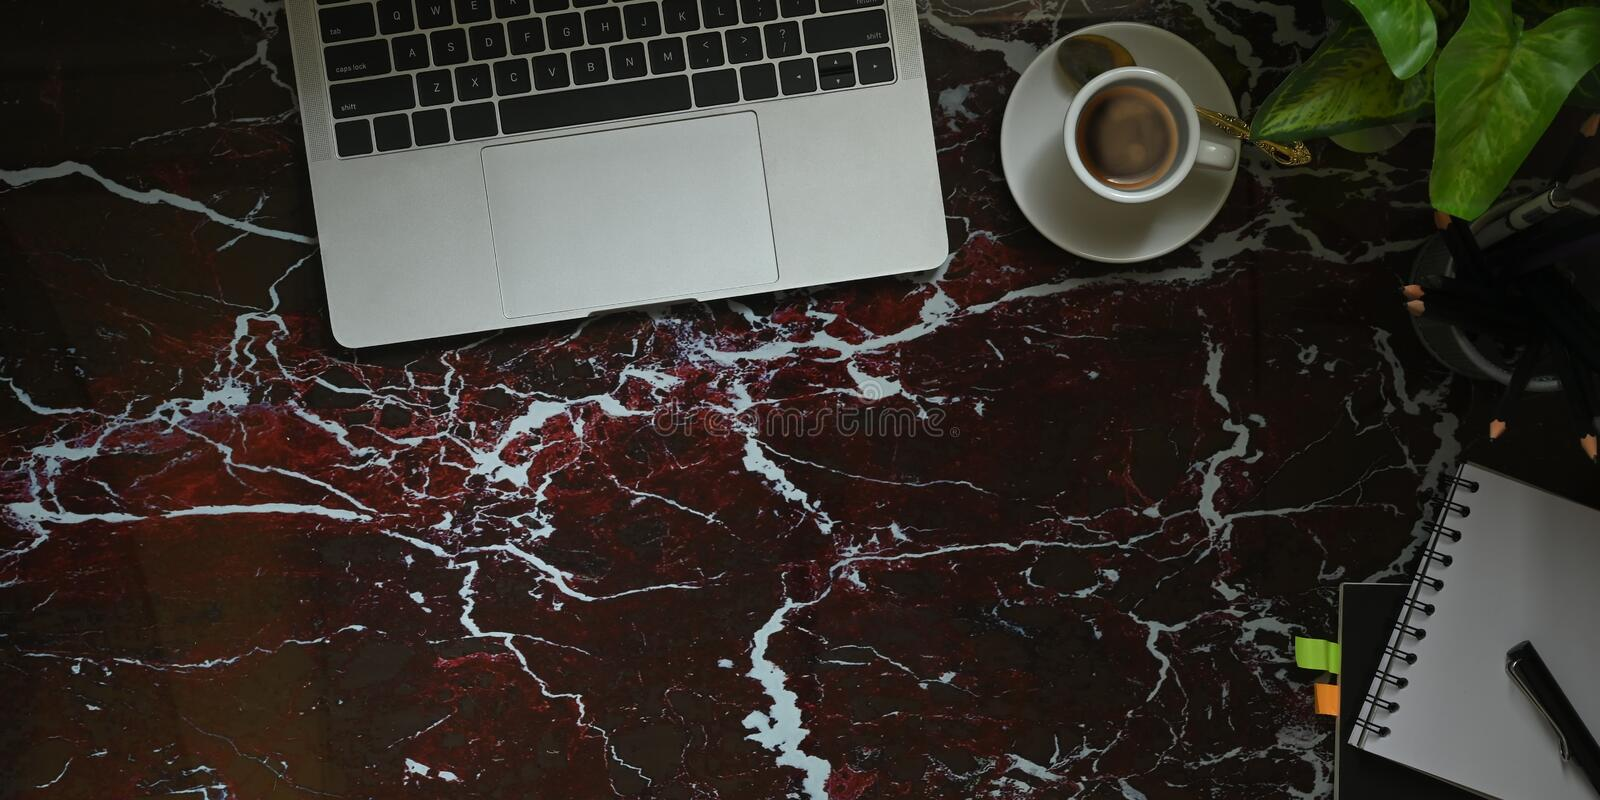 Top view image of computer laptop putting on marble texture table with coffee cup, potted plant, notebook and pen. stock images